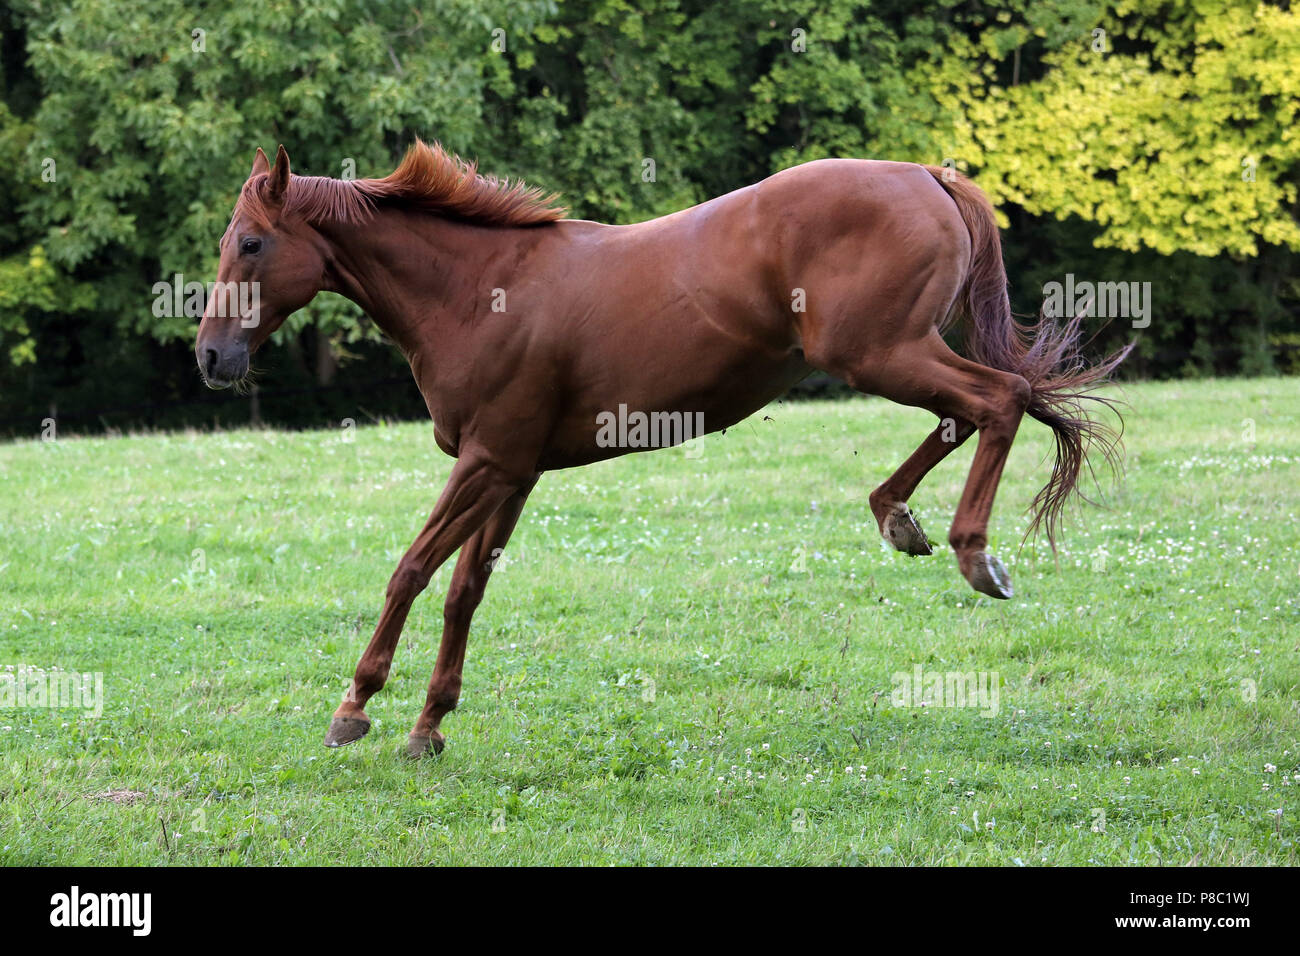 Gestuet Westerberg, horse hunched in the pasture - Stock Image